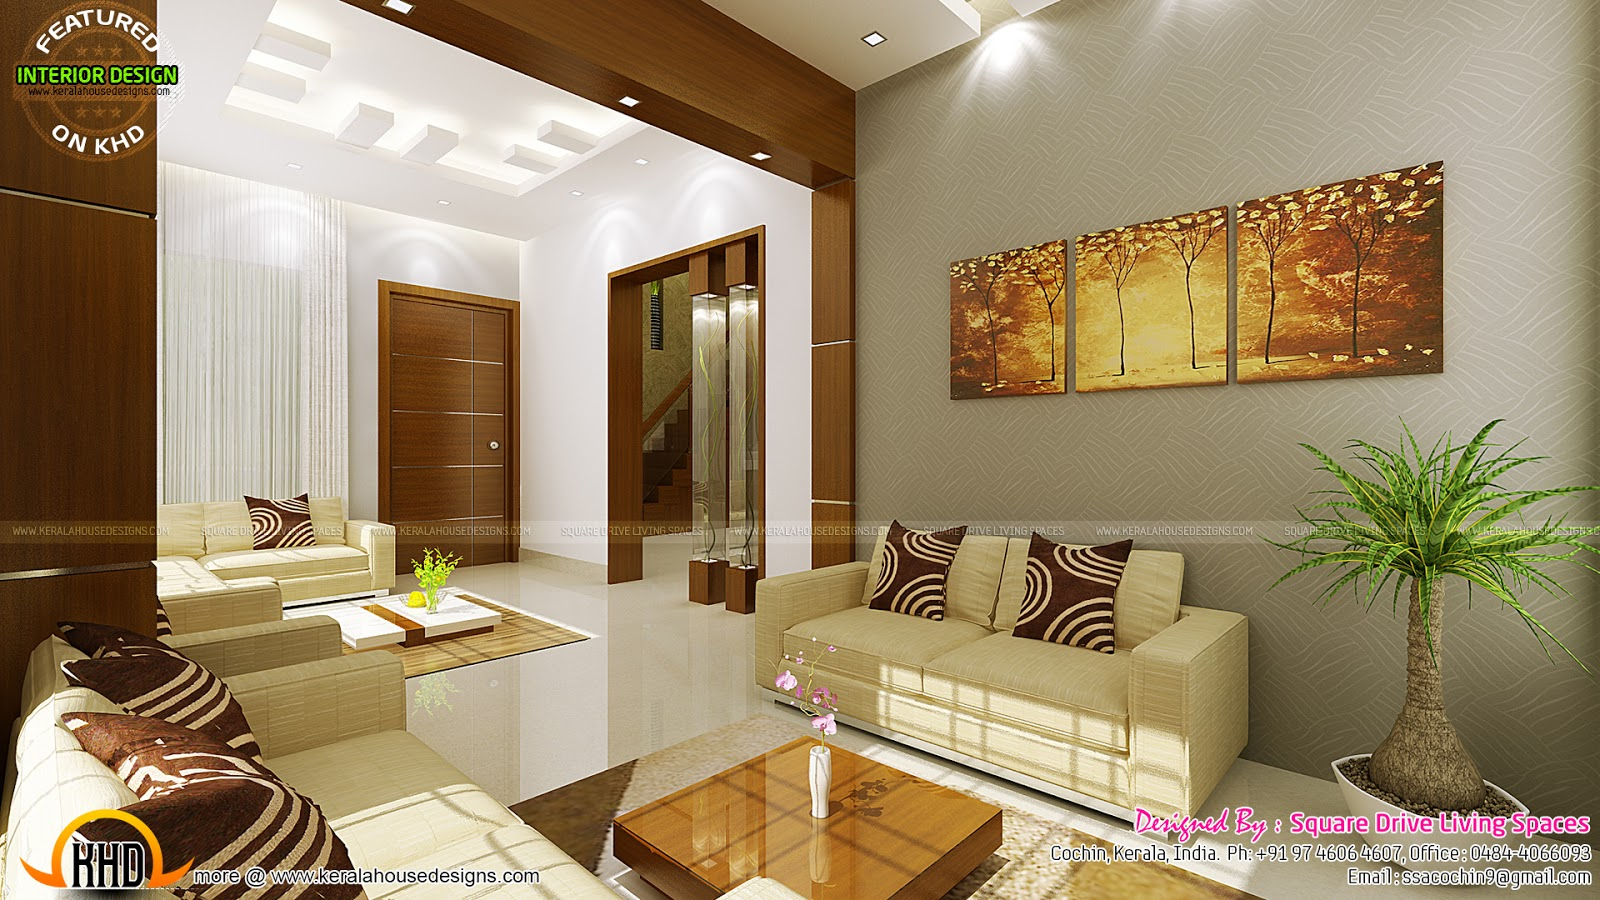 Contemporary kitchen dining and living room kerala home for Home interior decorating